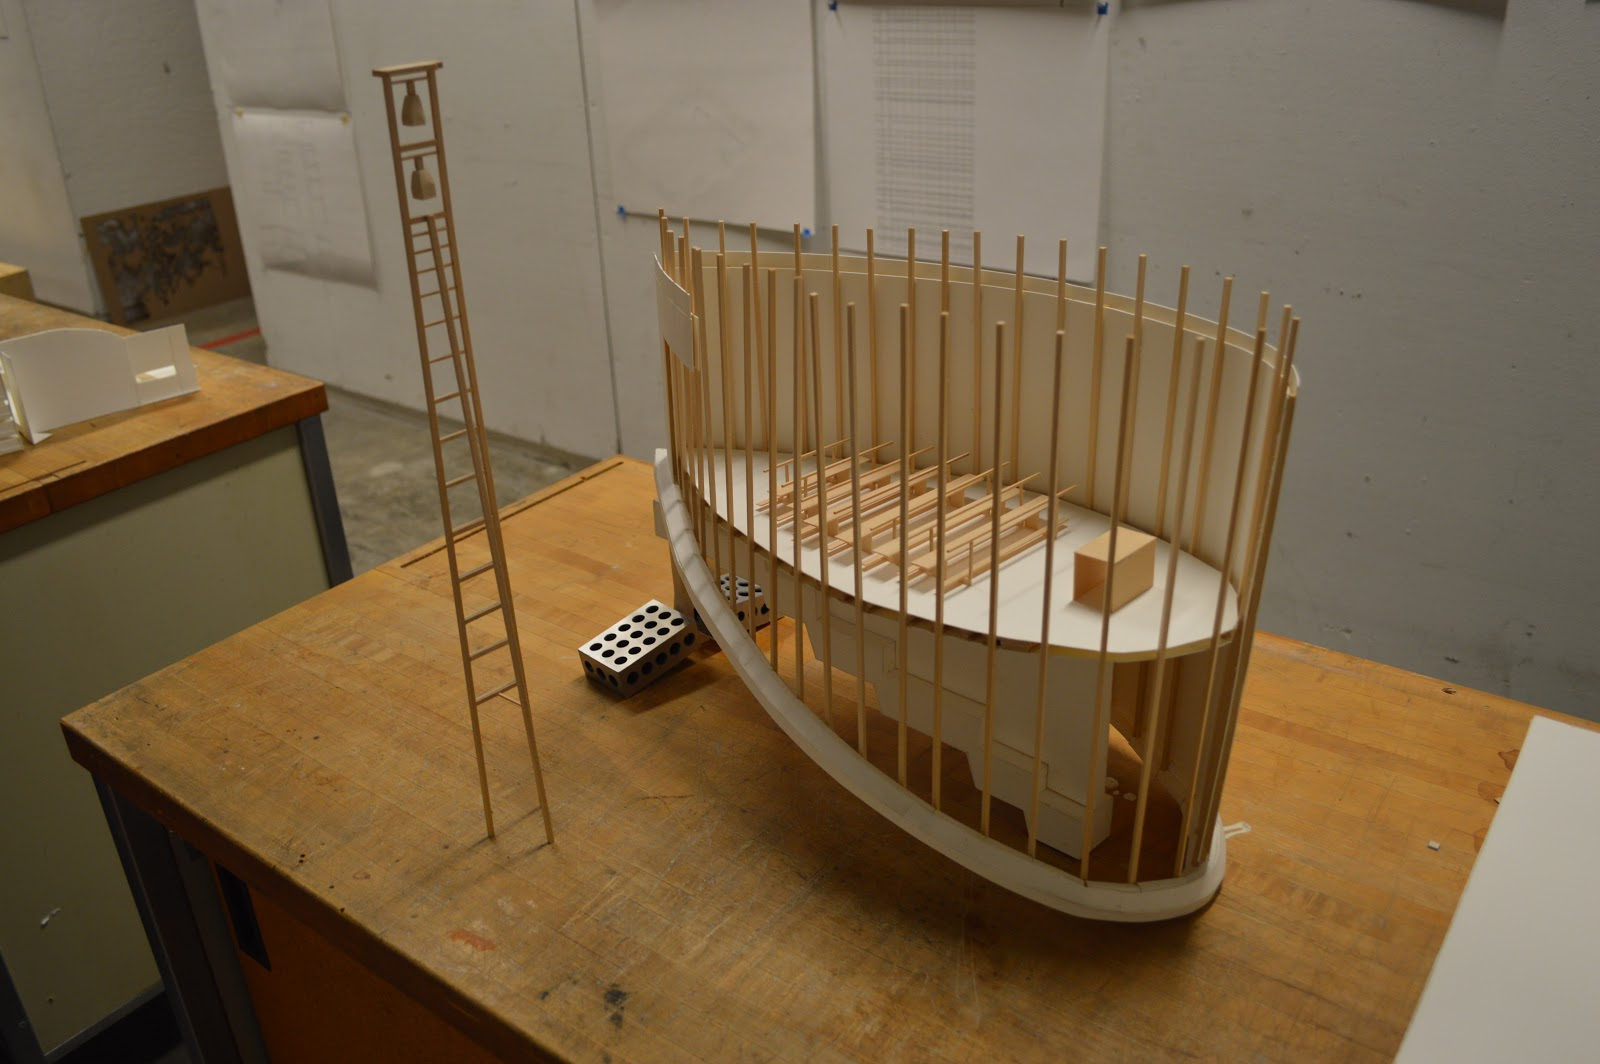 J Turn St Benedict Chapel By Peter Zumthor 1 30 Scale Model